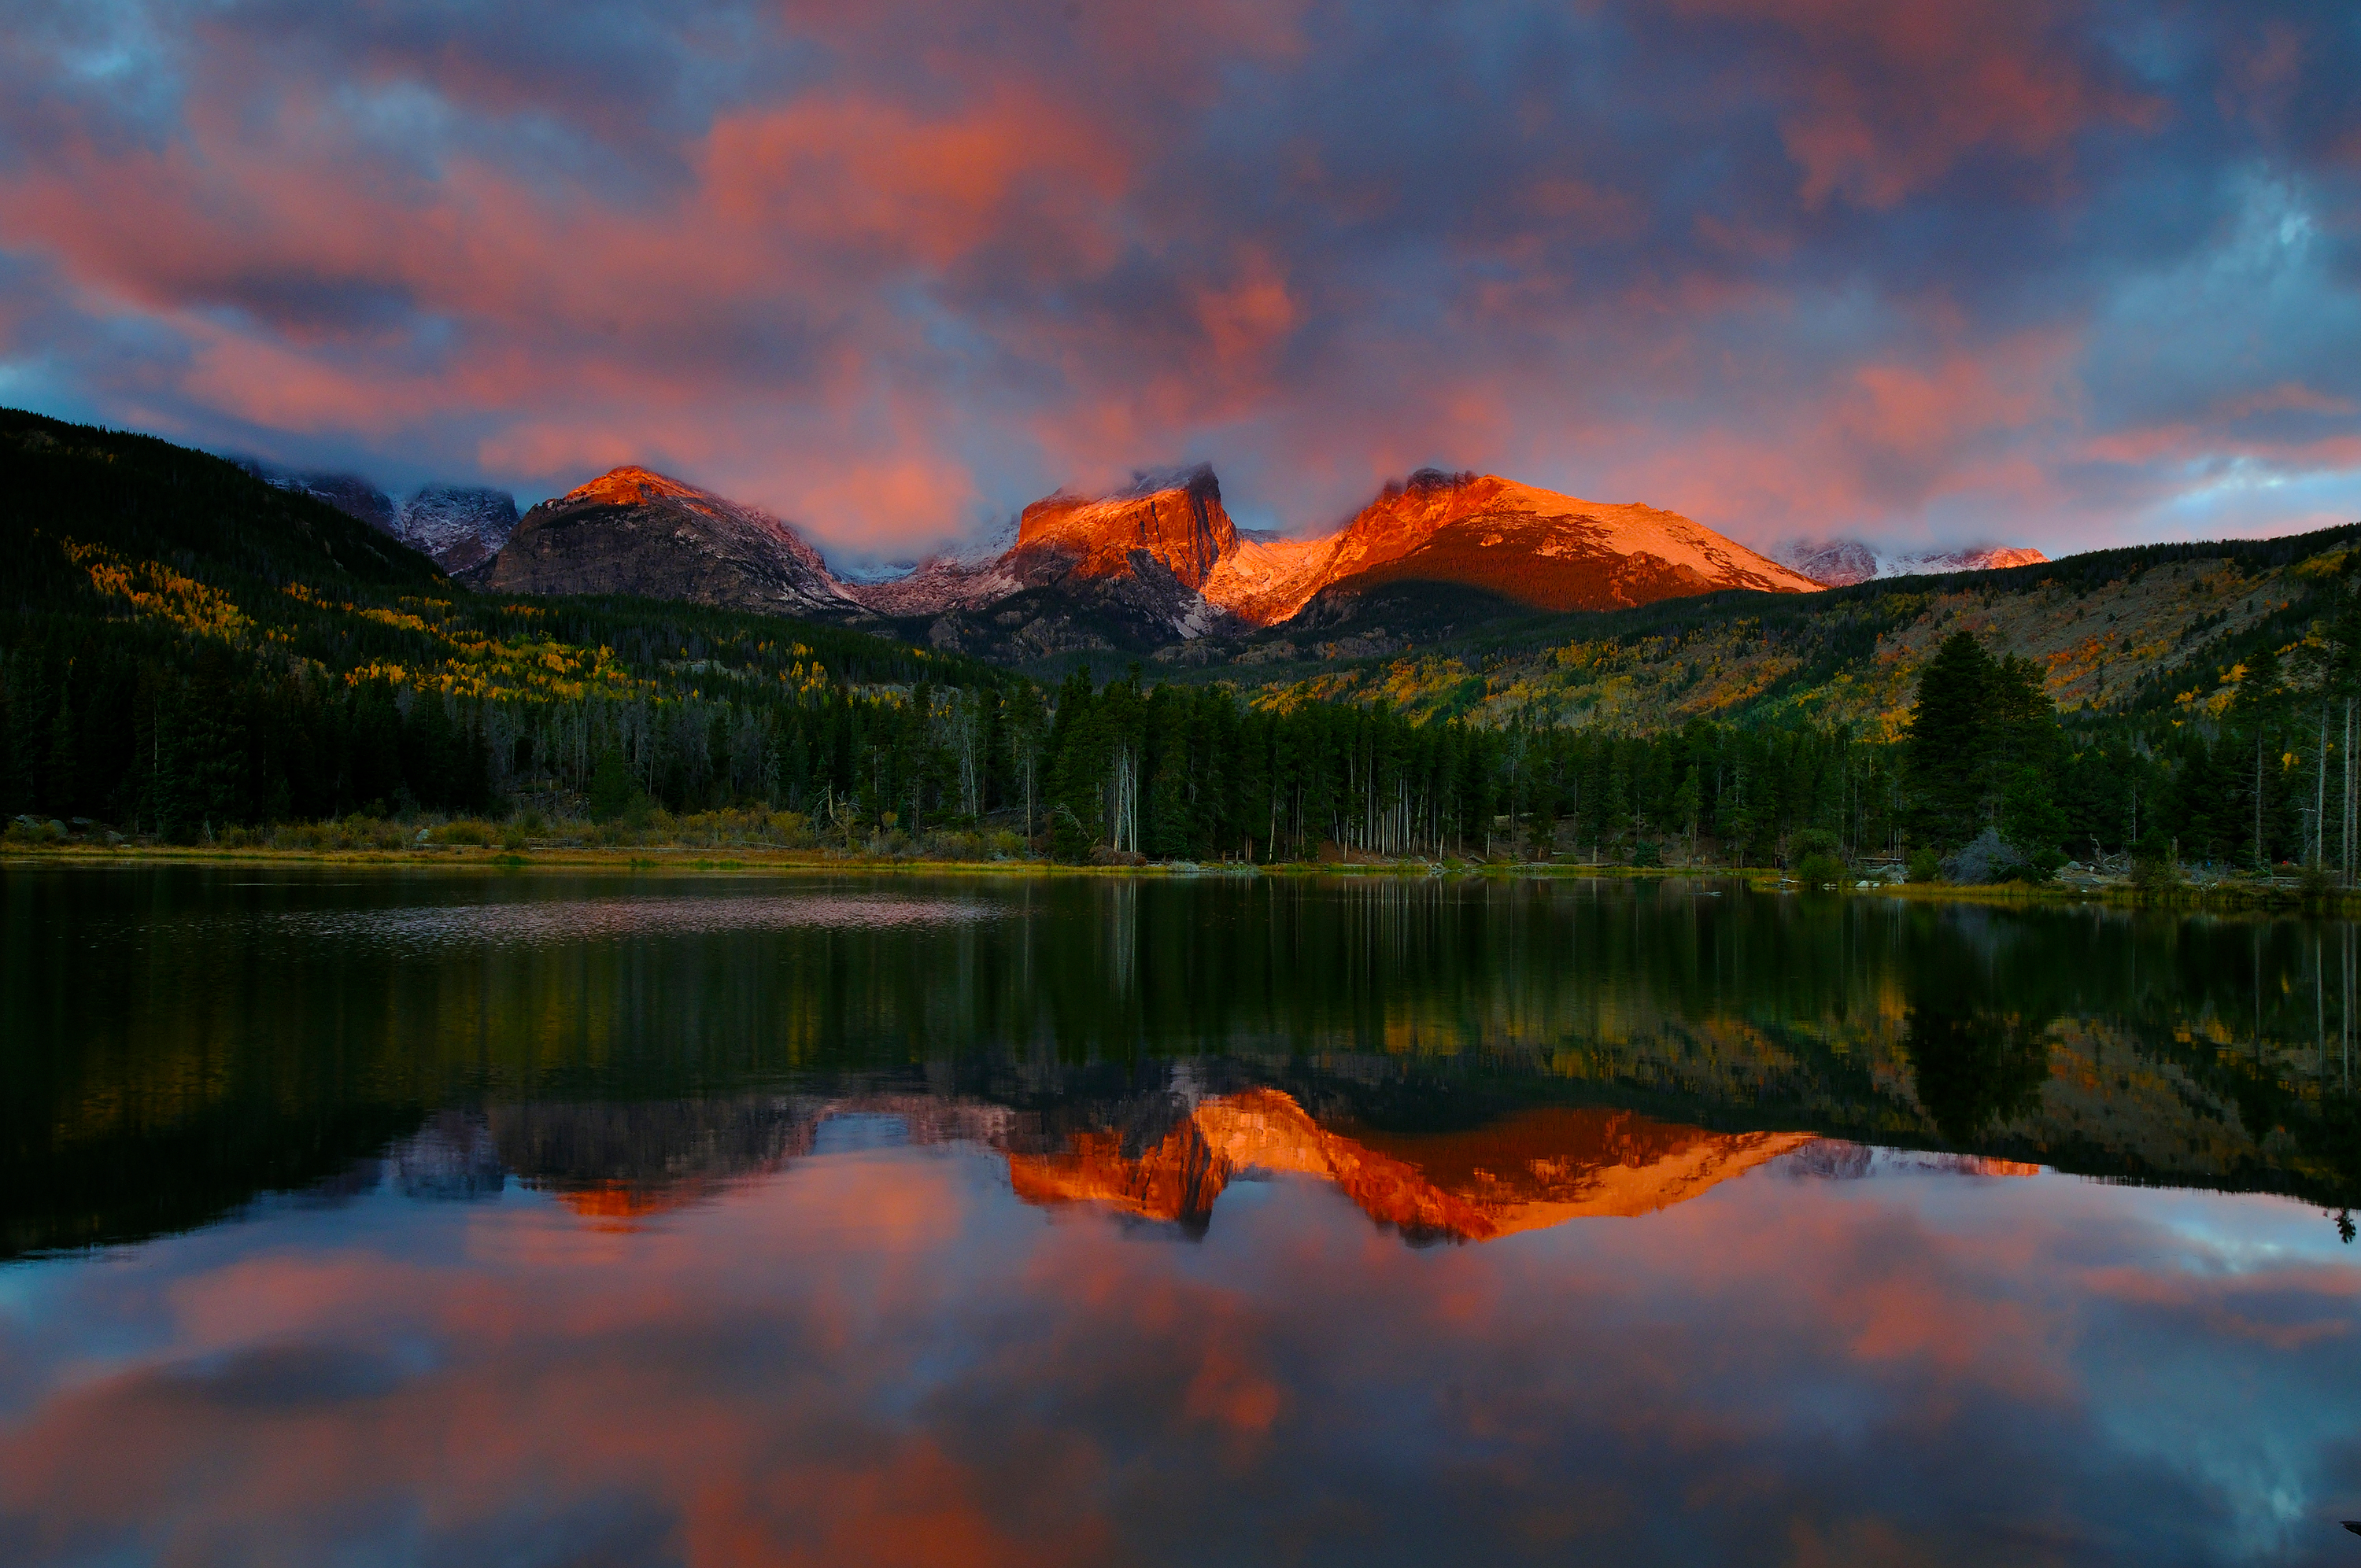 <div class='title'>           Rocky Mountain Sunrise         </div>                 <div class='description'>           Sunrise light casts alpenglow on the peaks of the Continental Divide and lights up the sky above them, with a nearly perfect reflection in the waters of Sprague Lake         </div>